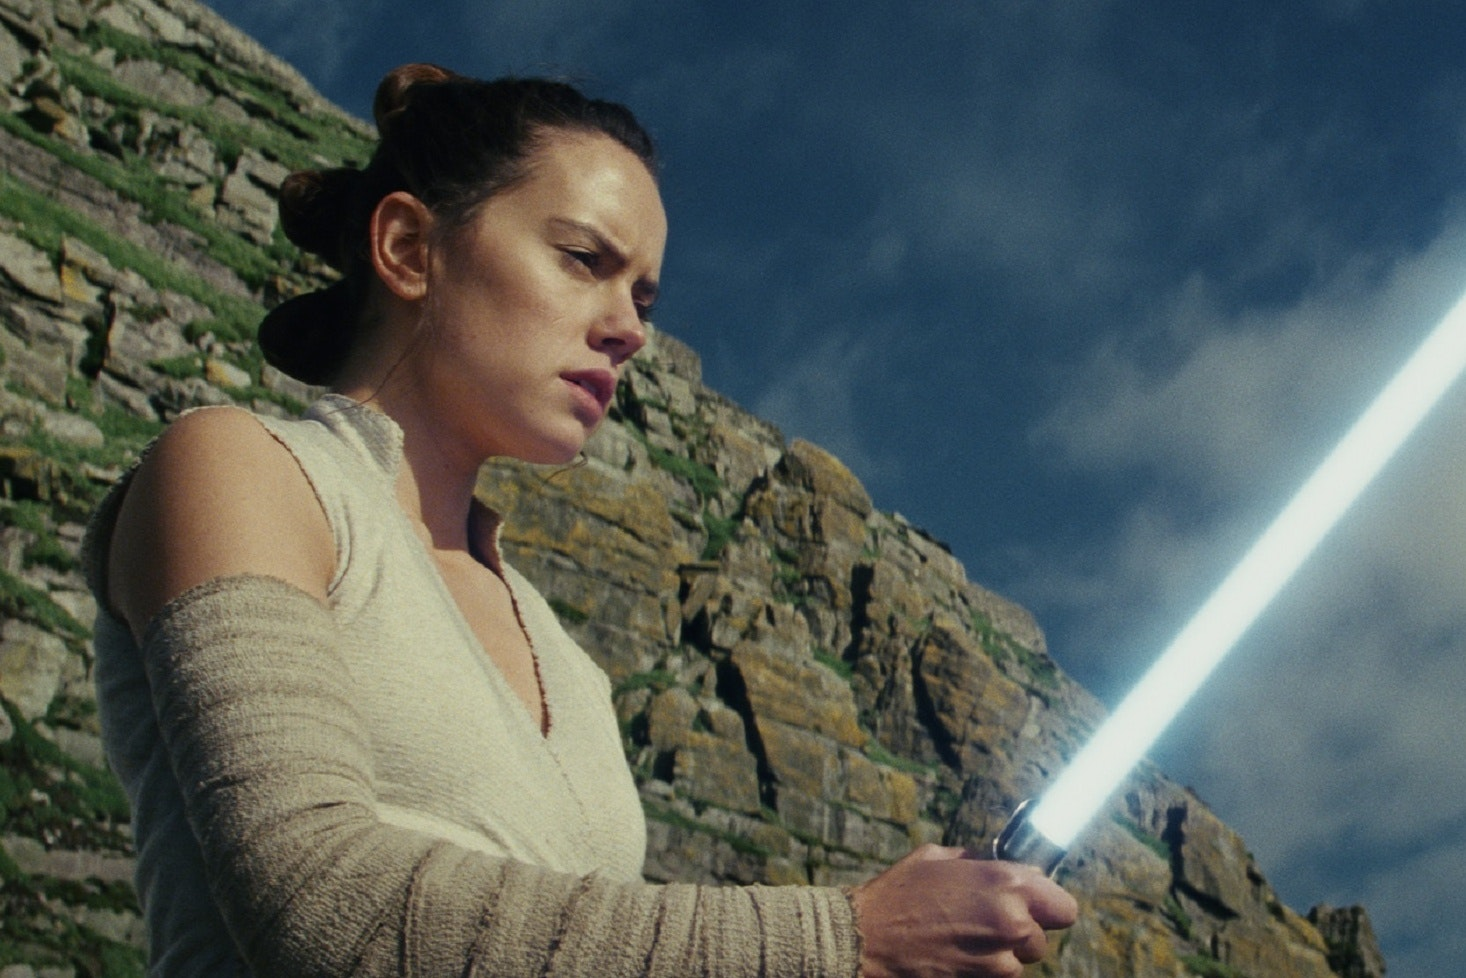 Daisy Ridley in Star Wars: The Last Jedi. (Photo: Lucasfilm Ltd. ..© 2017 Lucasfilm Ltd. All Rights Reserved).